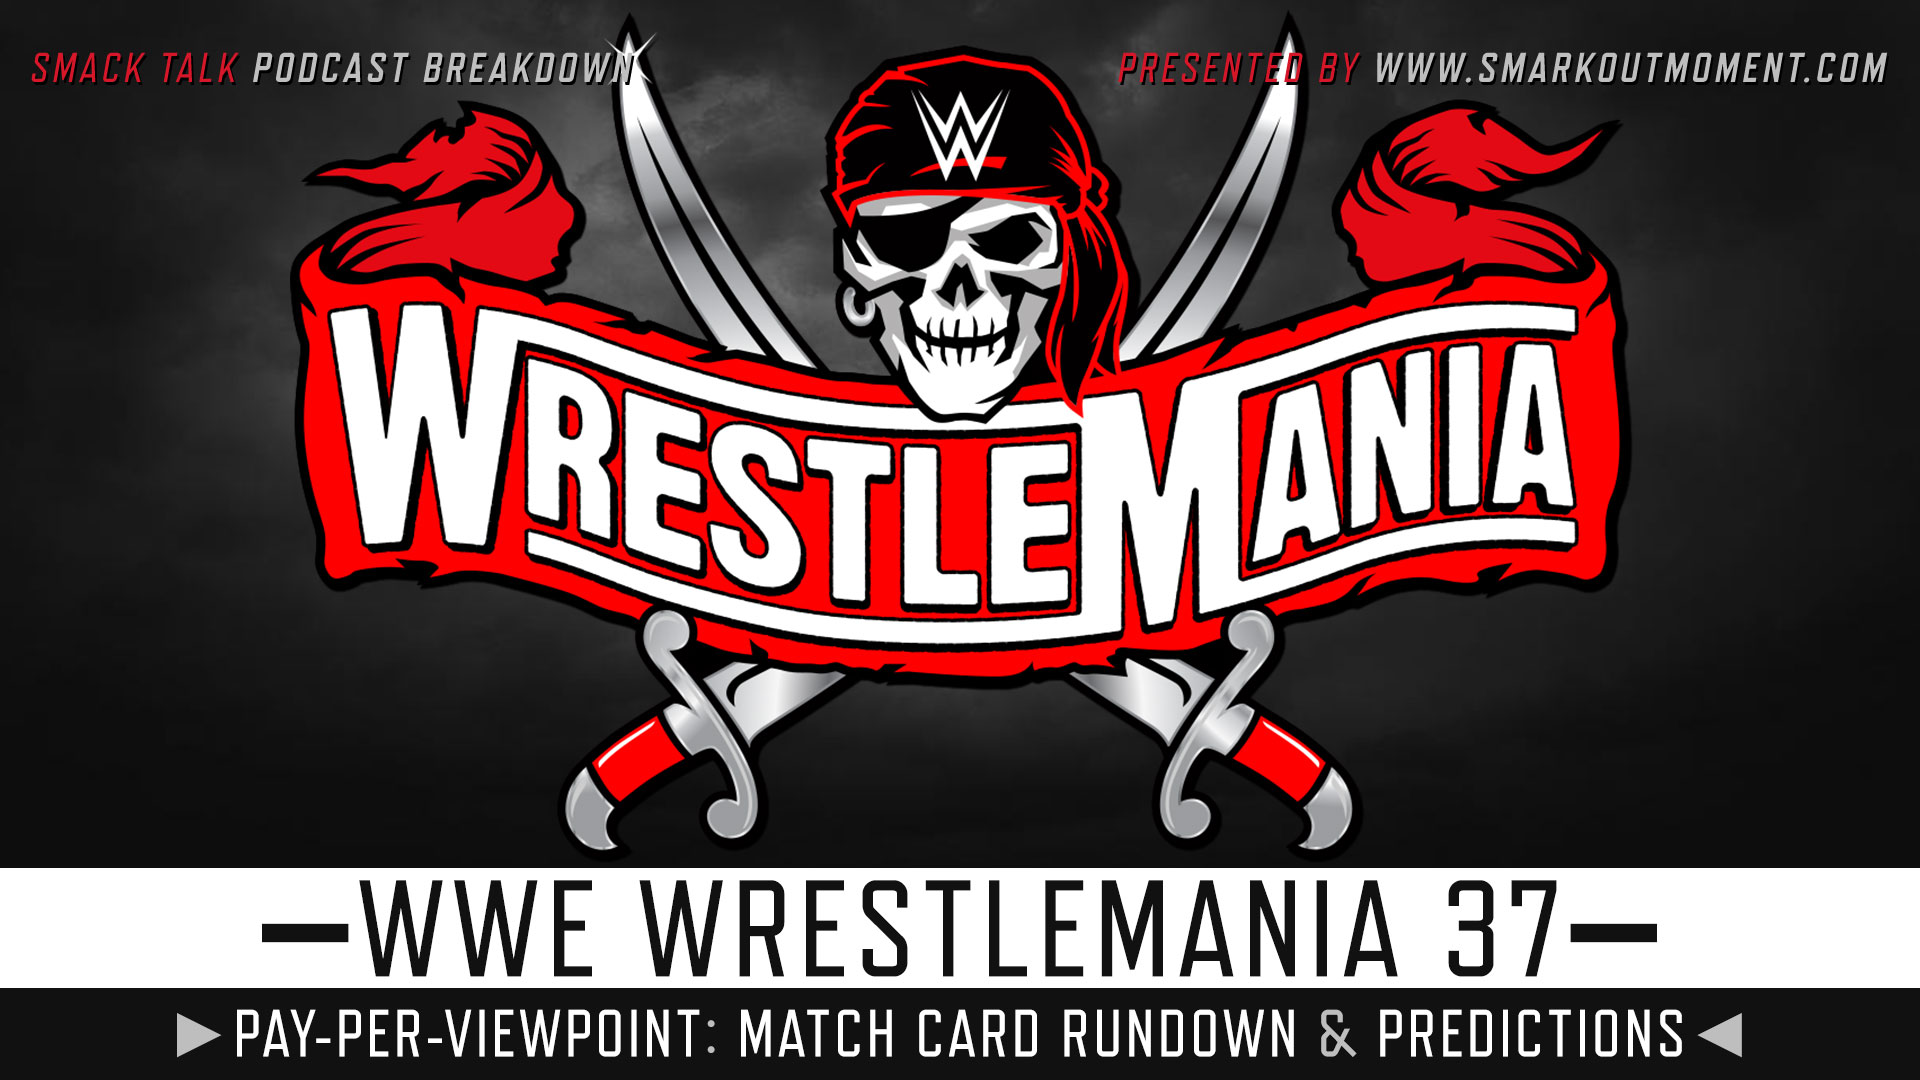 WWE WrestleMania 37 spoilers podcast